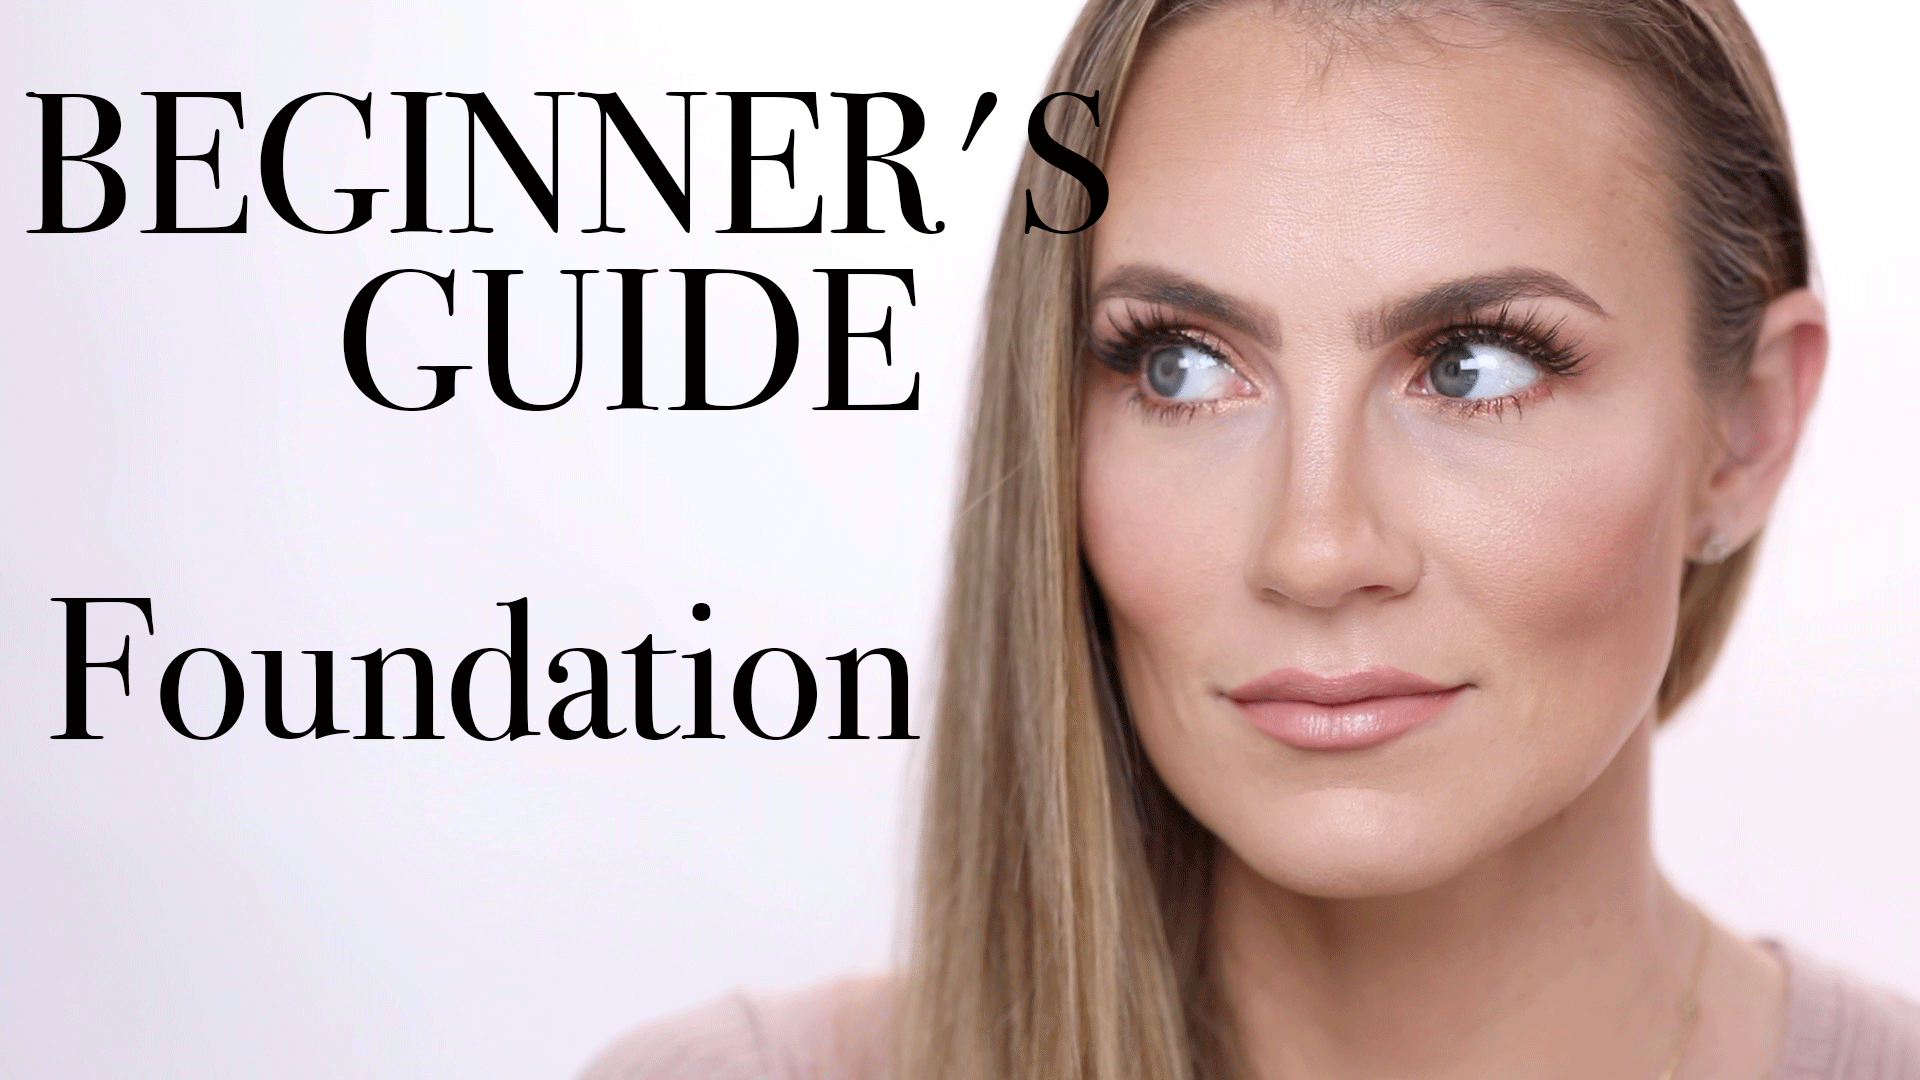 The Beginner's Guide to Makeup: Foundation